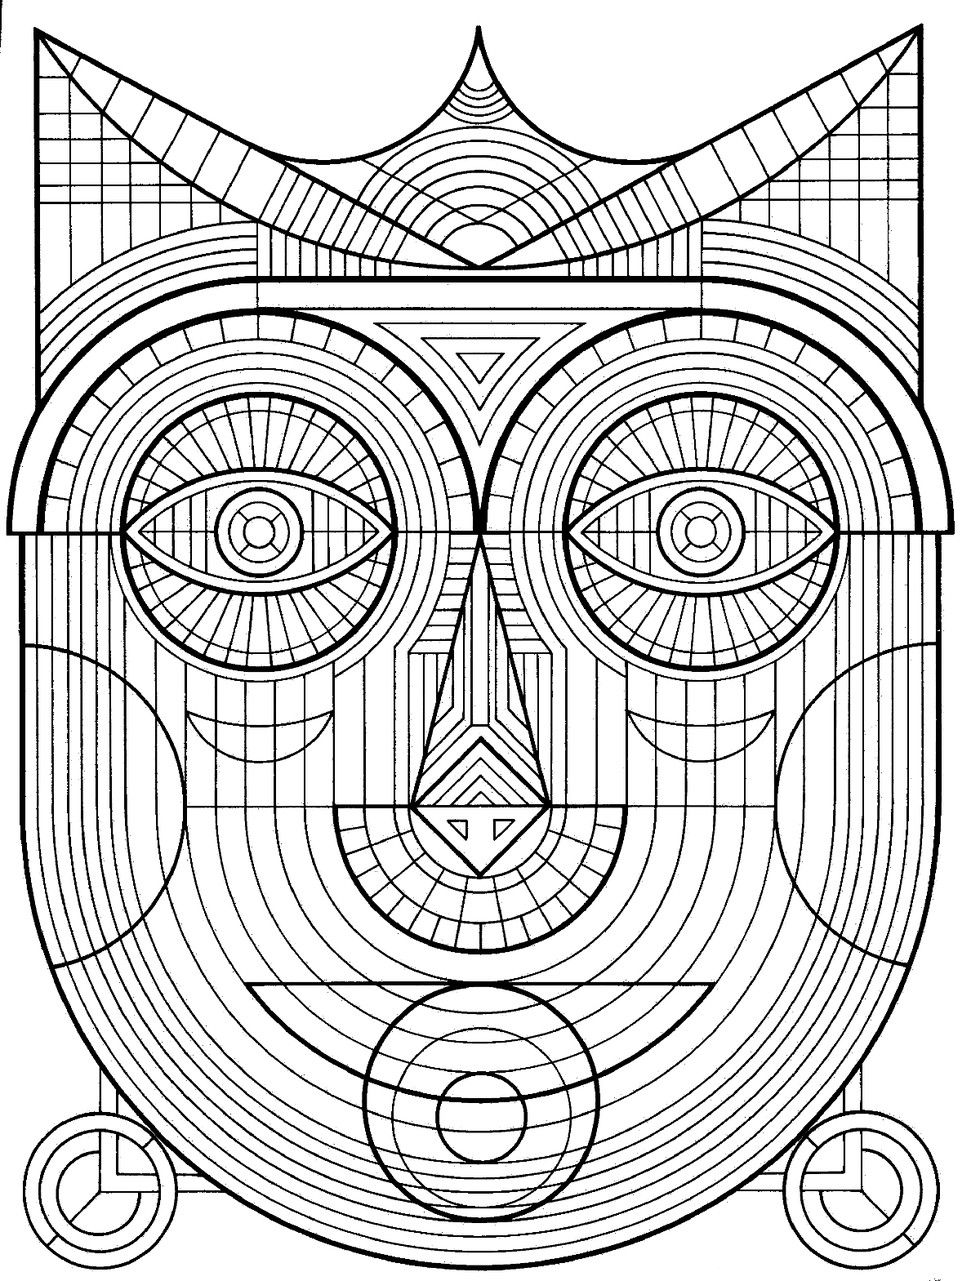 Coloring book adult meditation stress - These Printable Mandala And Abstract Coloring Pages Relieve Stress And Help You Meditate Higher Perspectives